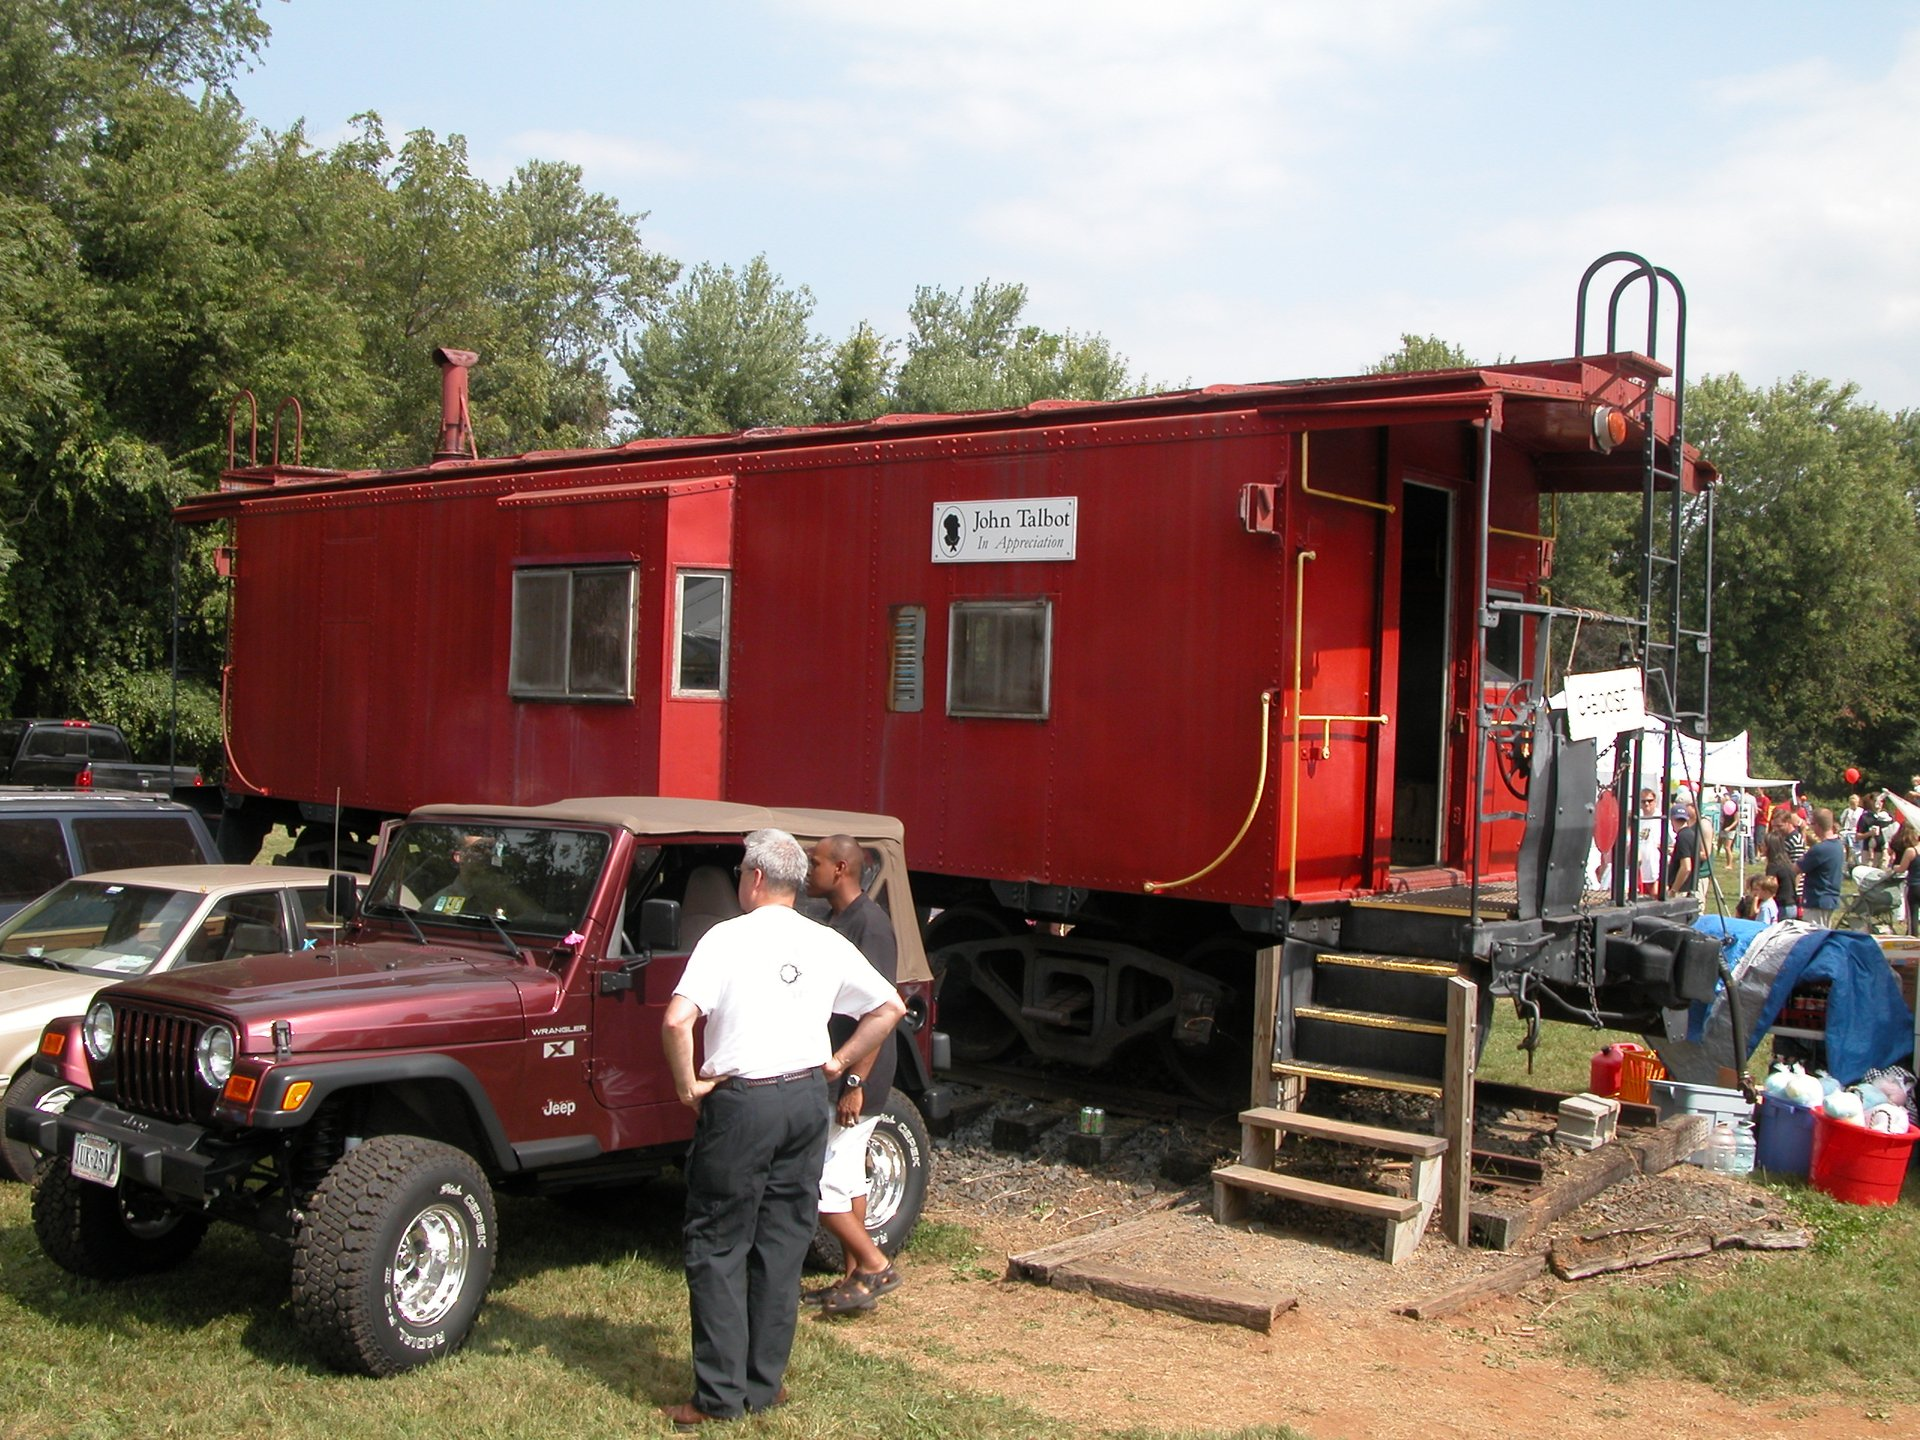 Caboose, a permanent display at the Bluemont Community Center. It was originally owned by the Nickle Plate Road. 2020